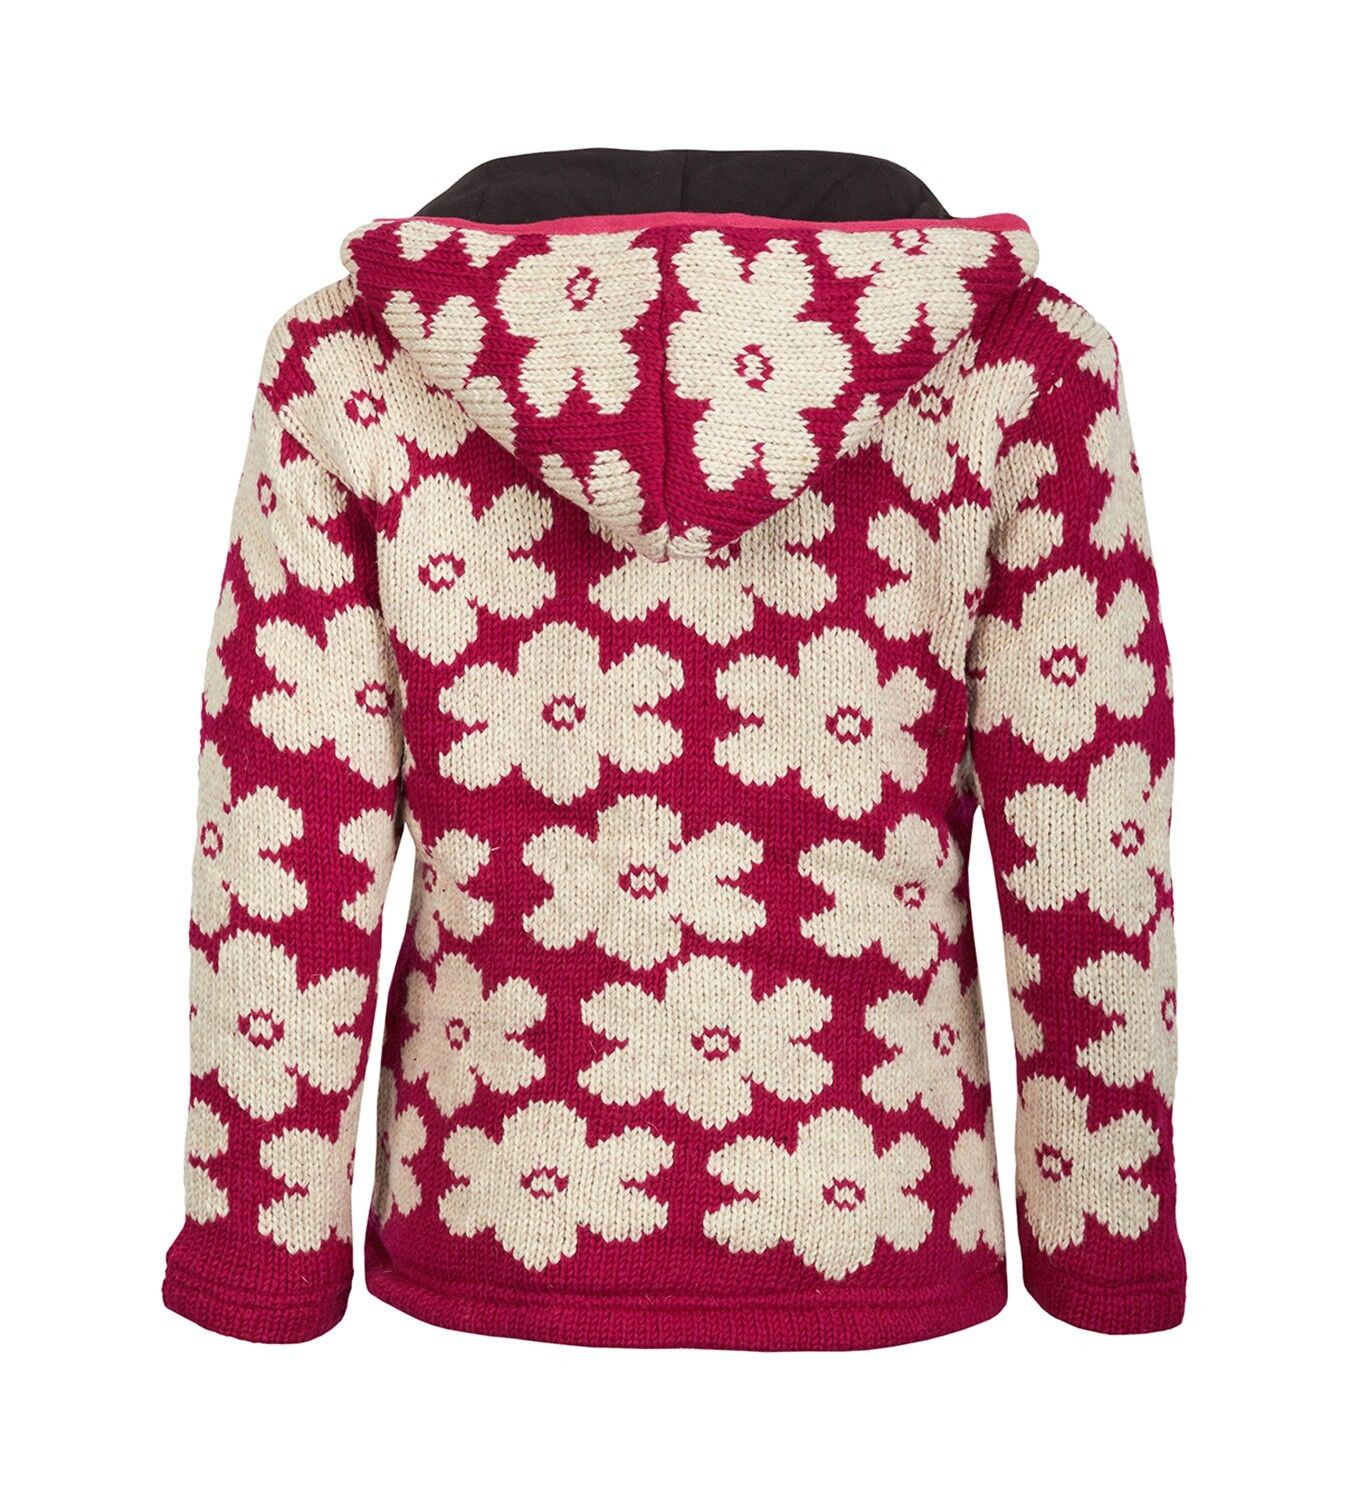 Kunst Und Magie Goa Flower Ladies Nepal Cardigan Poncho Sweater Sweater Sweater Wool Winter 1c25a0